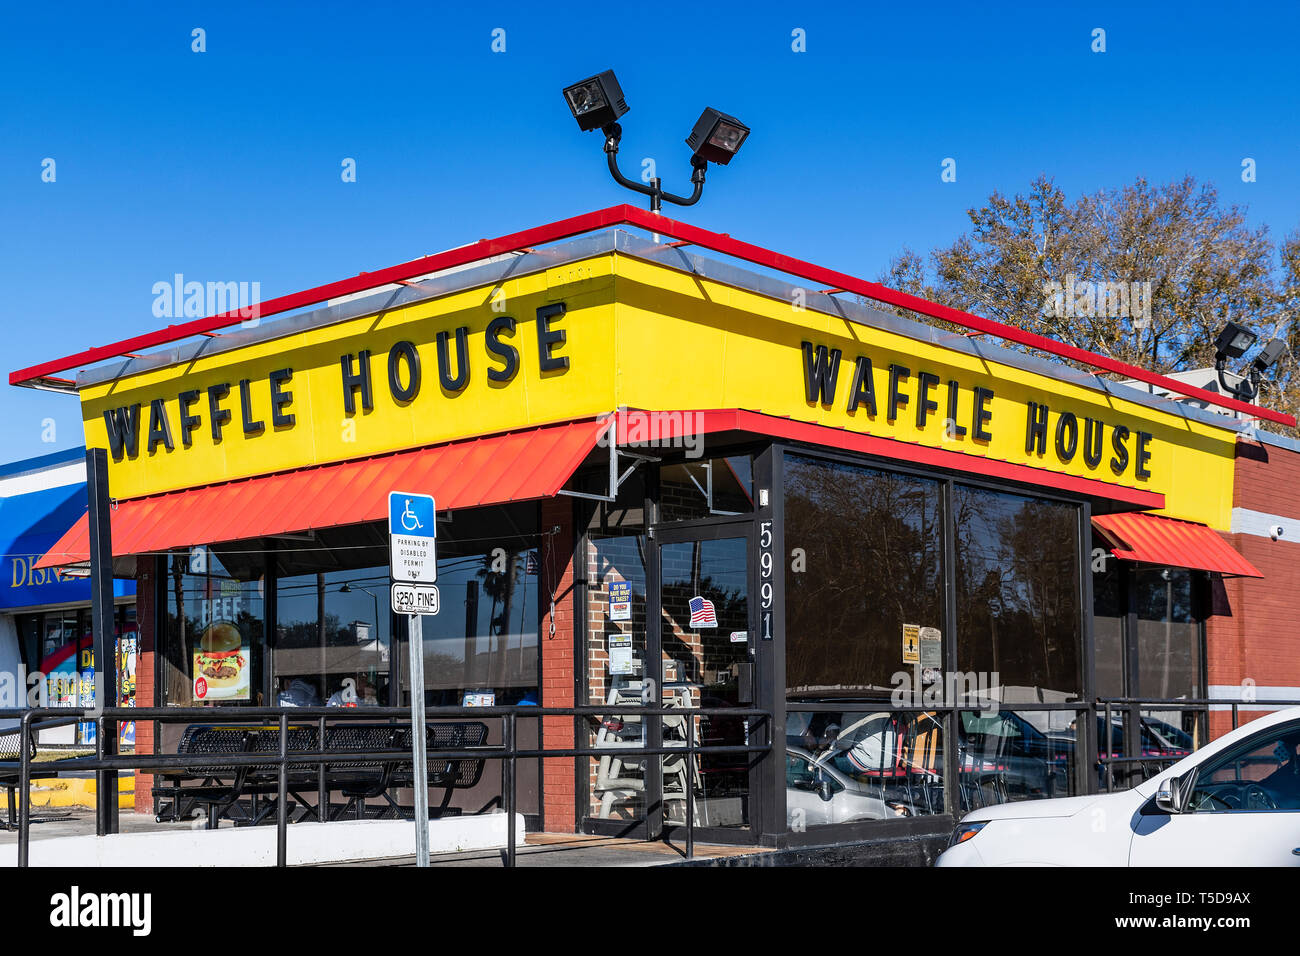 Waffle House is an American restaurant chain predominately located in the southern states. - Stock Image